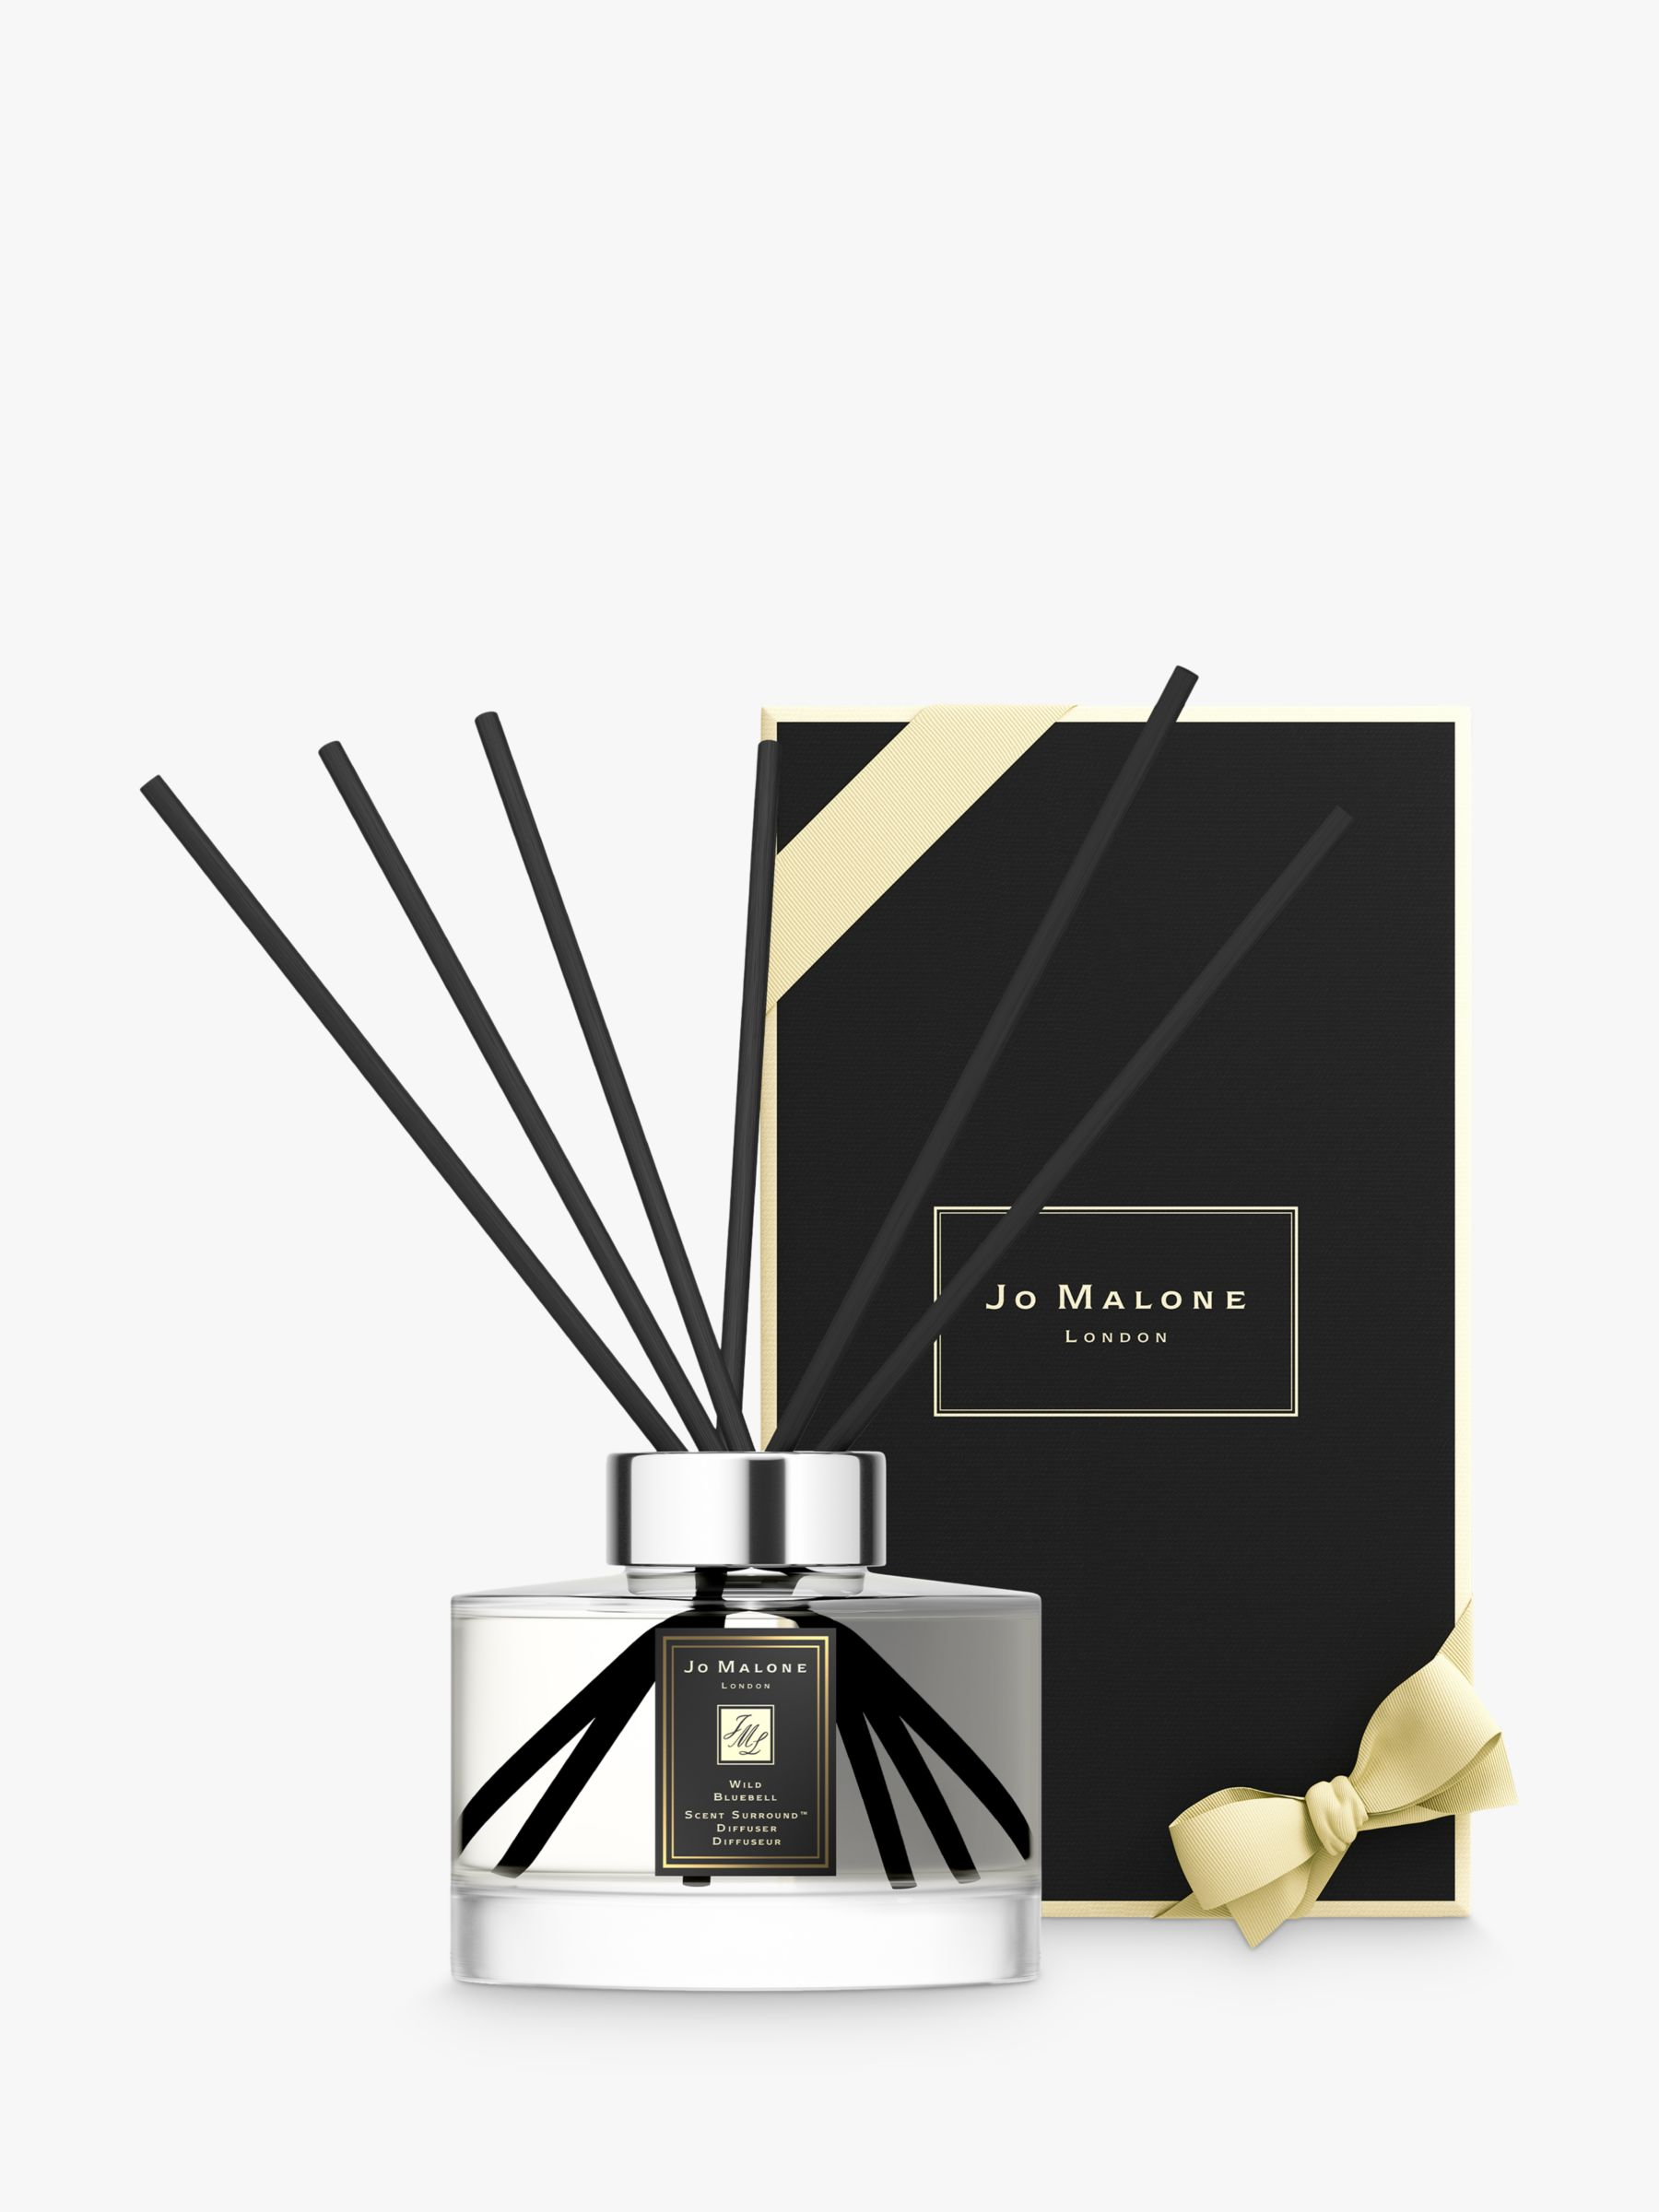 Jo Malone London Wild Bluebell Scent Surround Reed Diffuser 165ml At John Lewis Partners